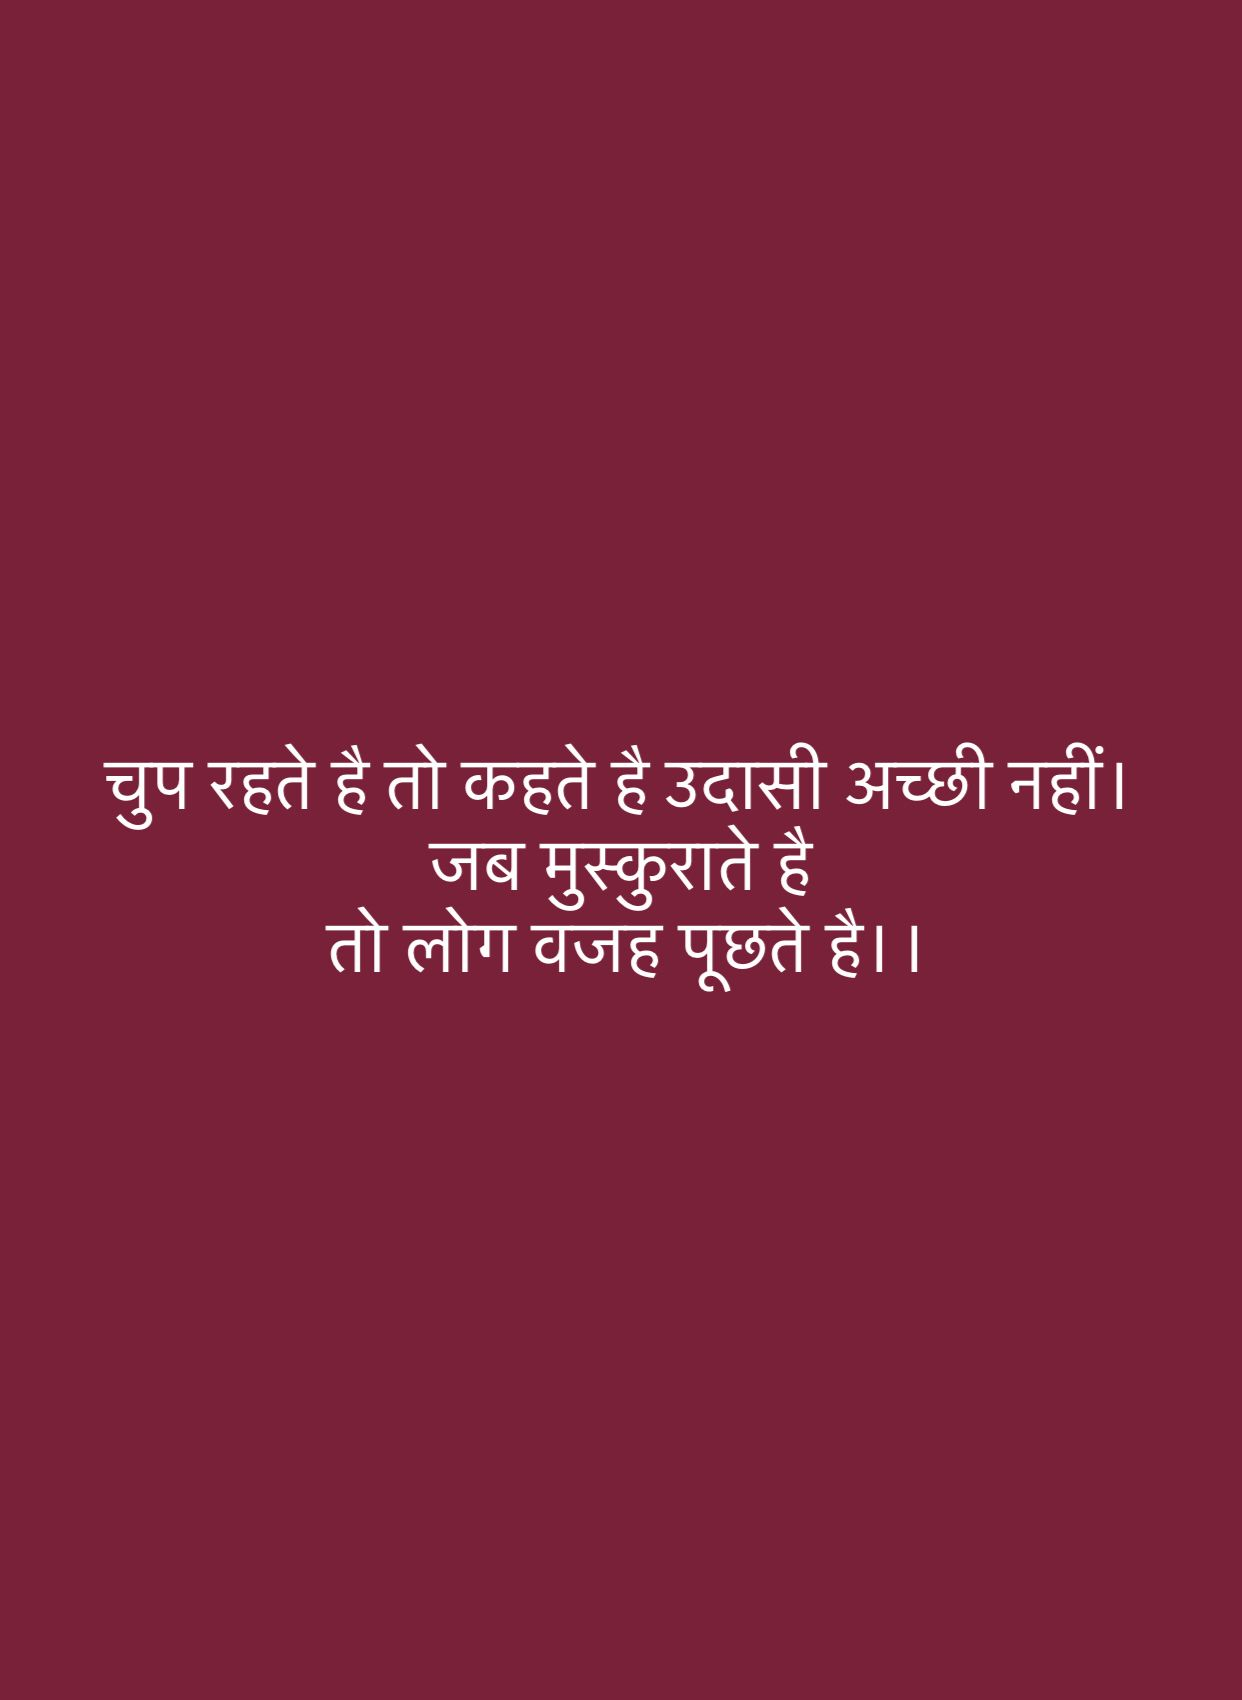 Pin by Dr. Rahul Kumar on Feelings | Good morning quotes ...